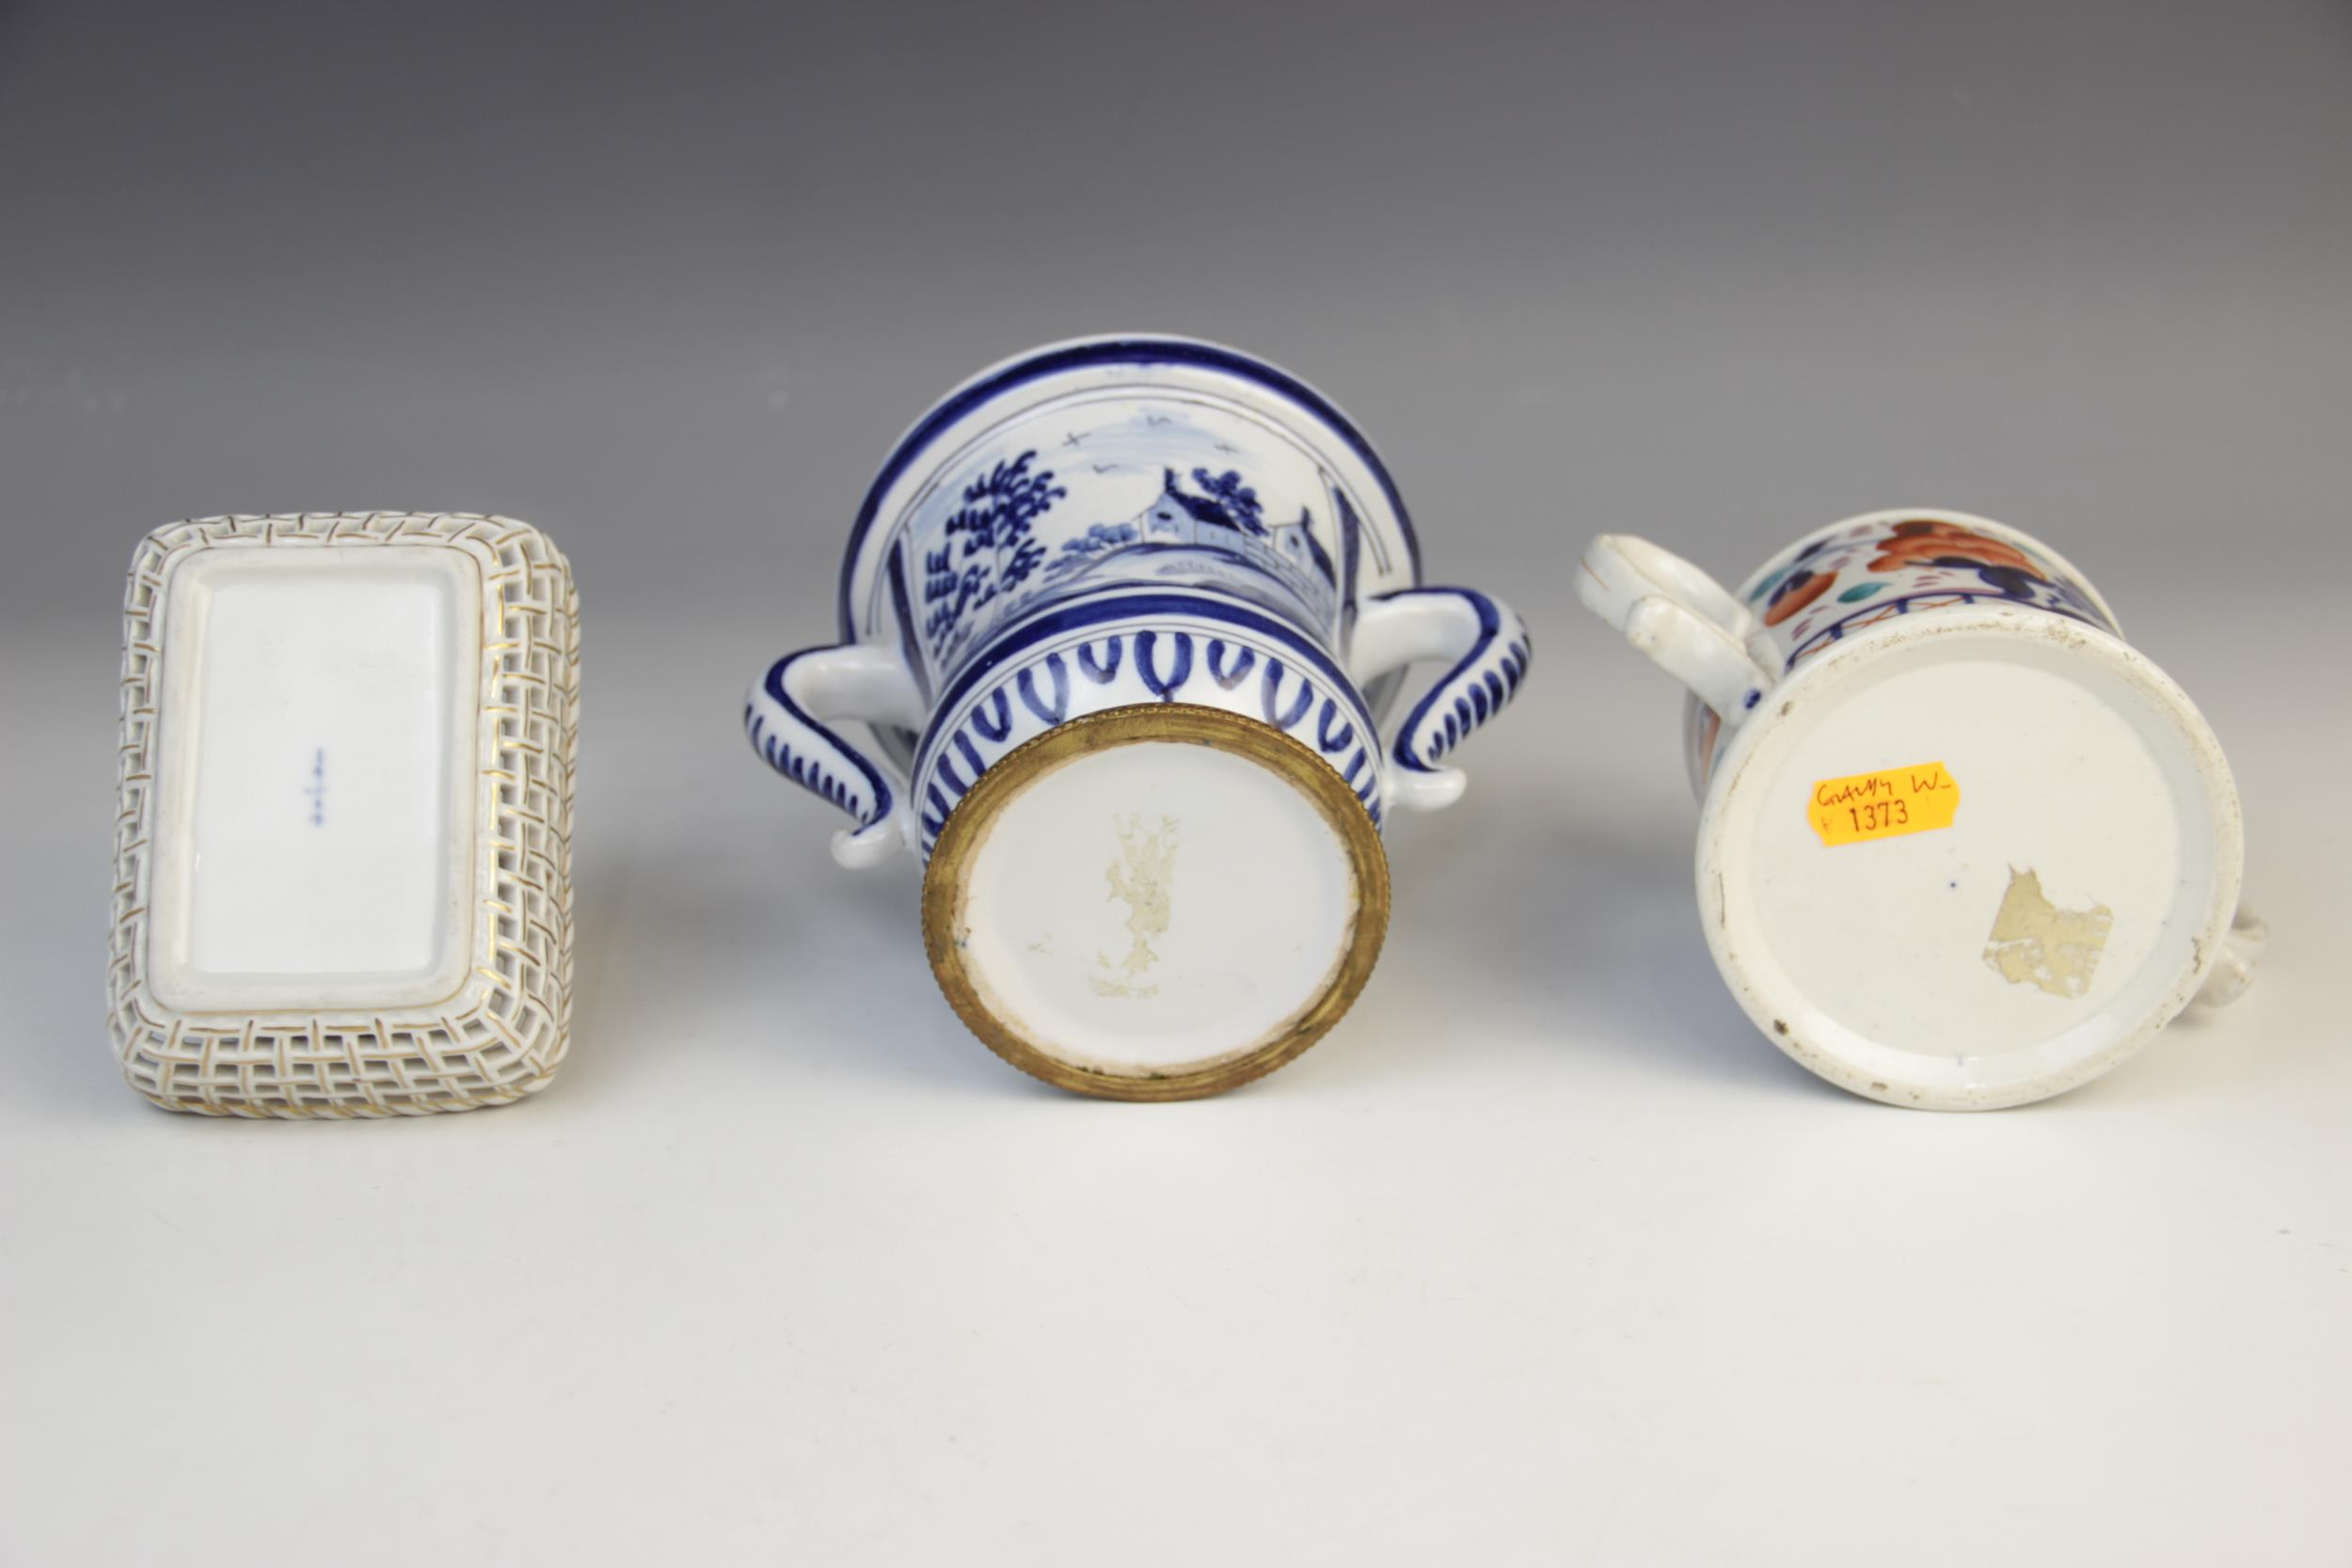 A selection of British and Continental porcelain, to include a German porcelain bottle vase with - Image 3 of 3